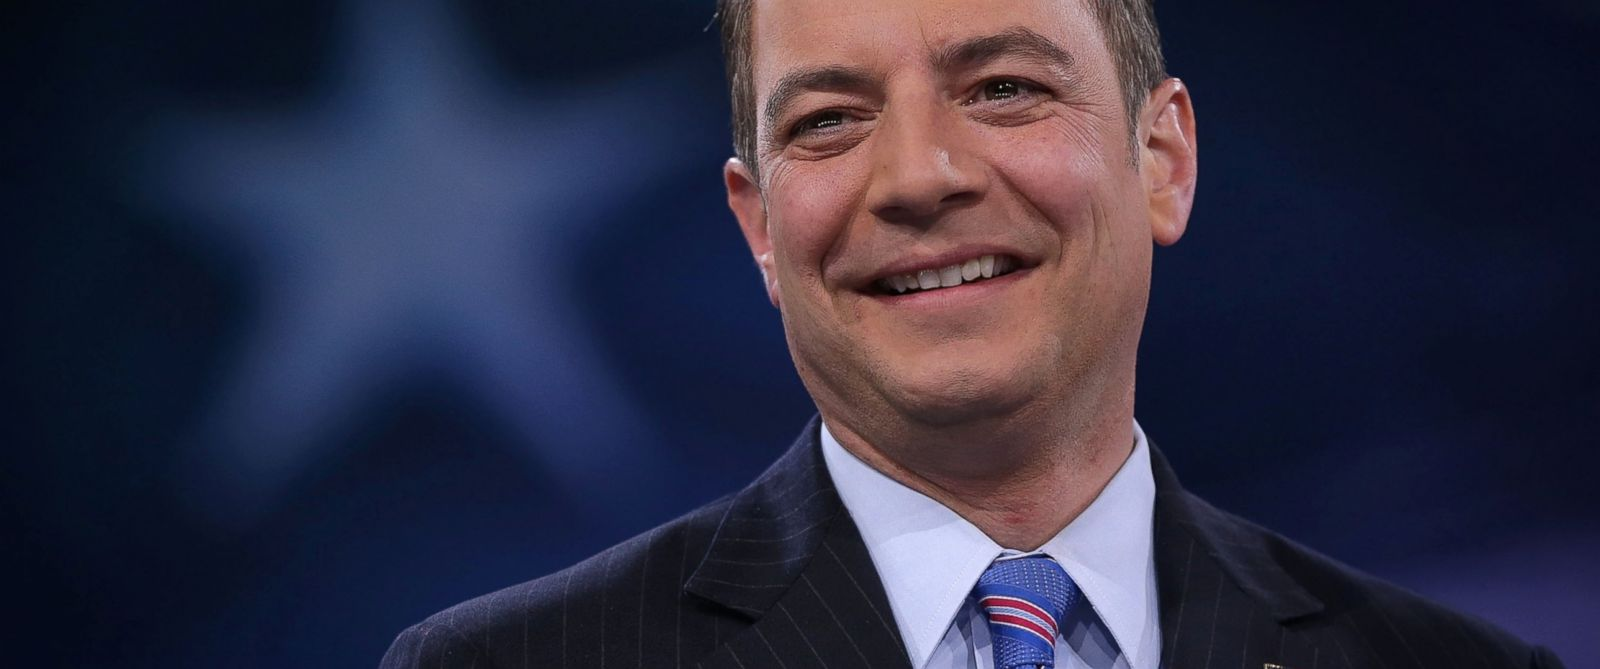 PHOTO: Chairman of the Republican National Committee Reince Priebus participates in a discussion during CPAC 2016 in National Harbor, Maryland March 4, 2016.